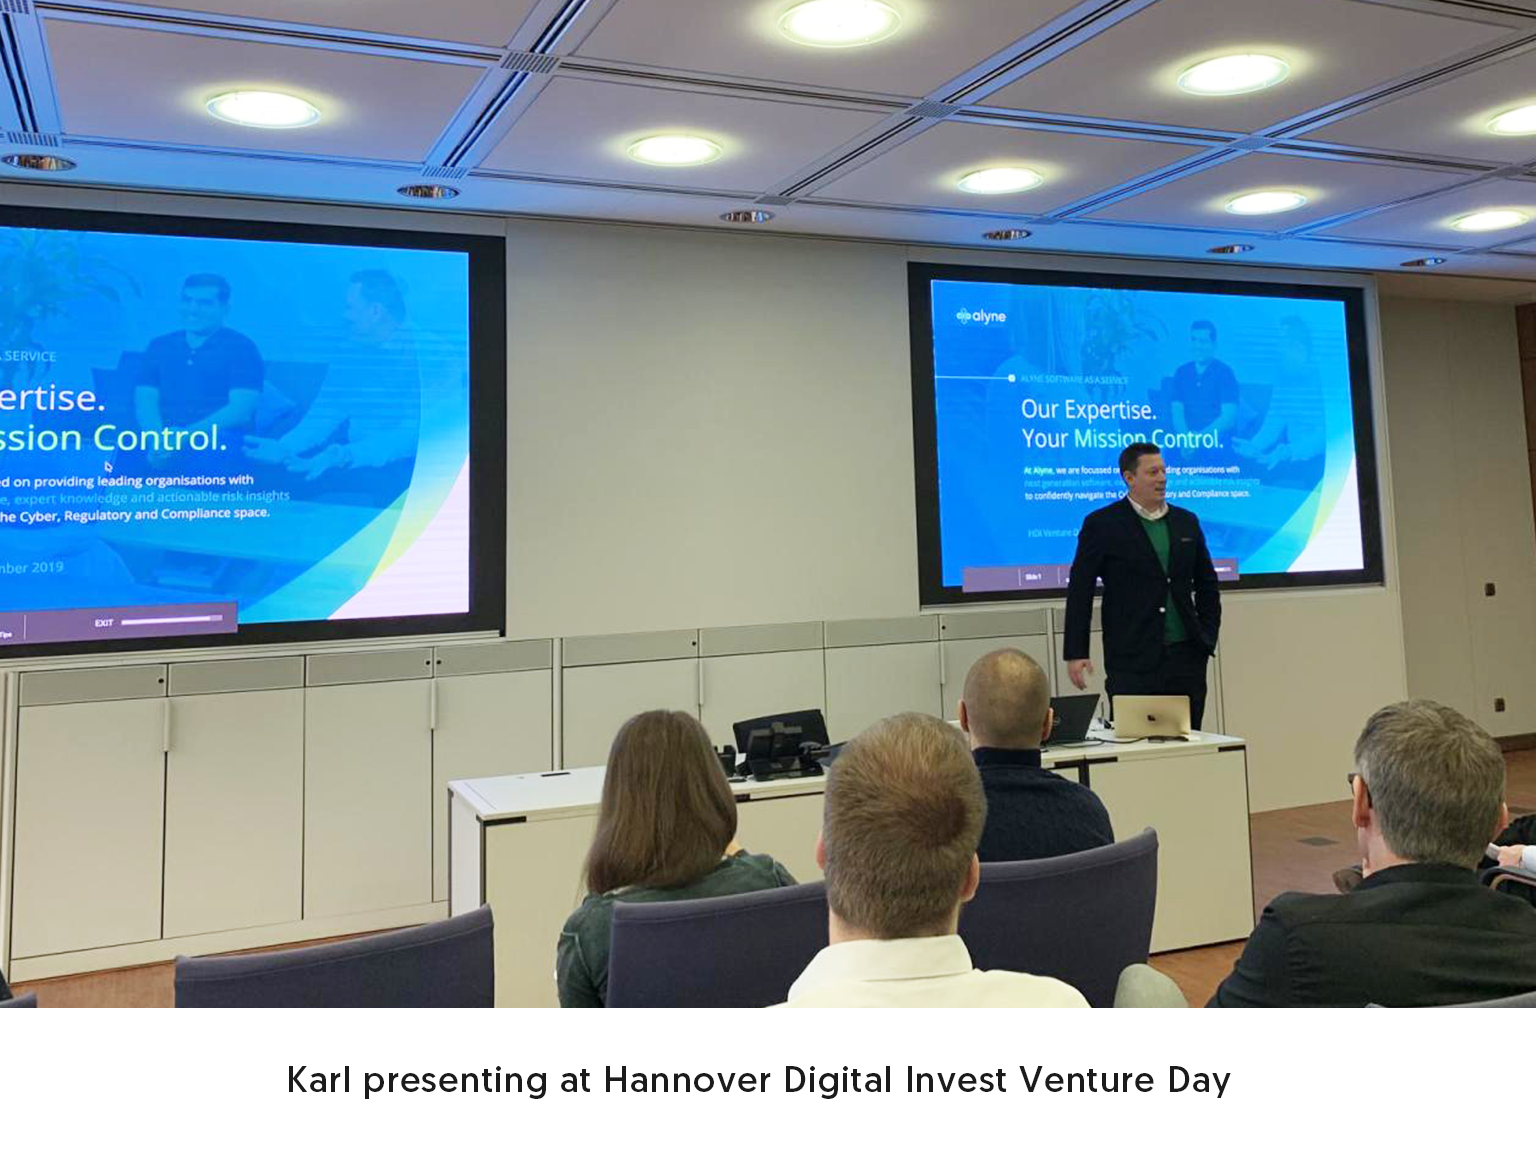 Karl presenting at Hannover Digital Invest Venture Day